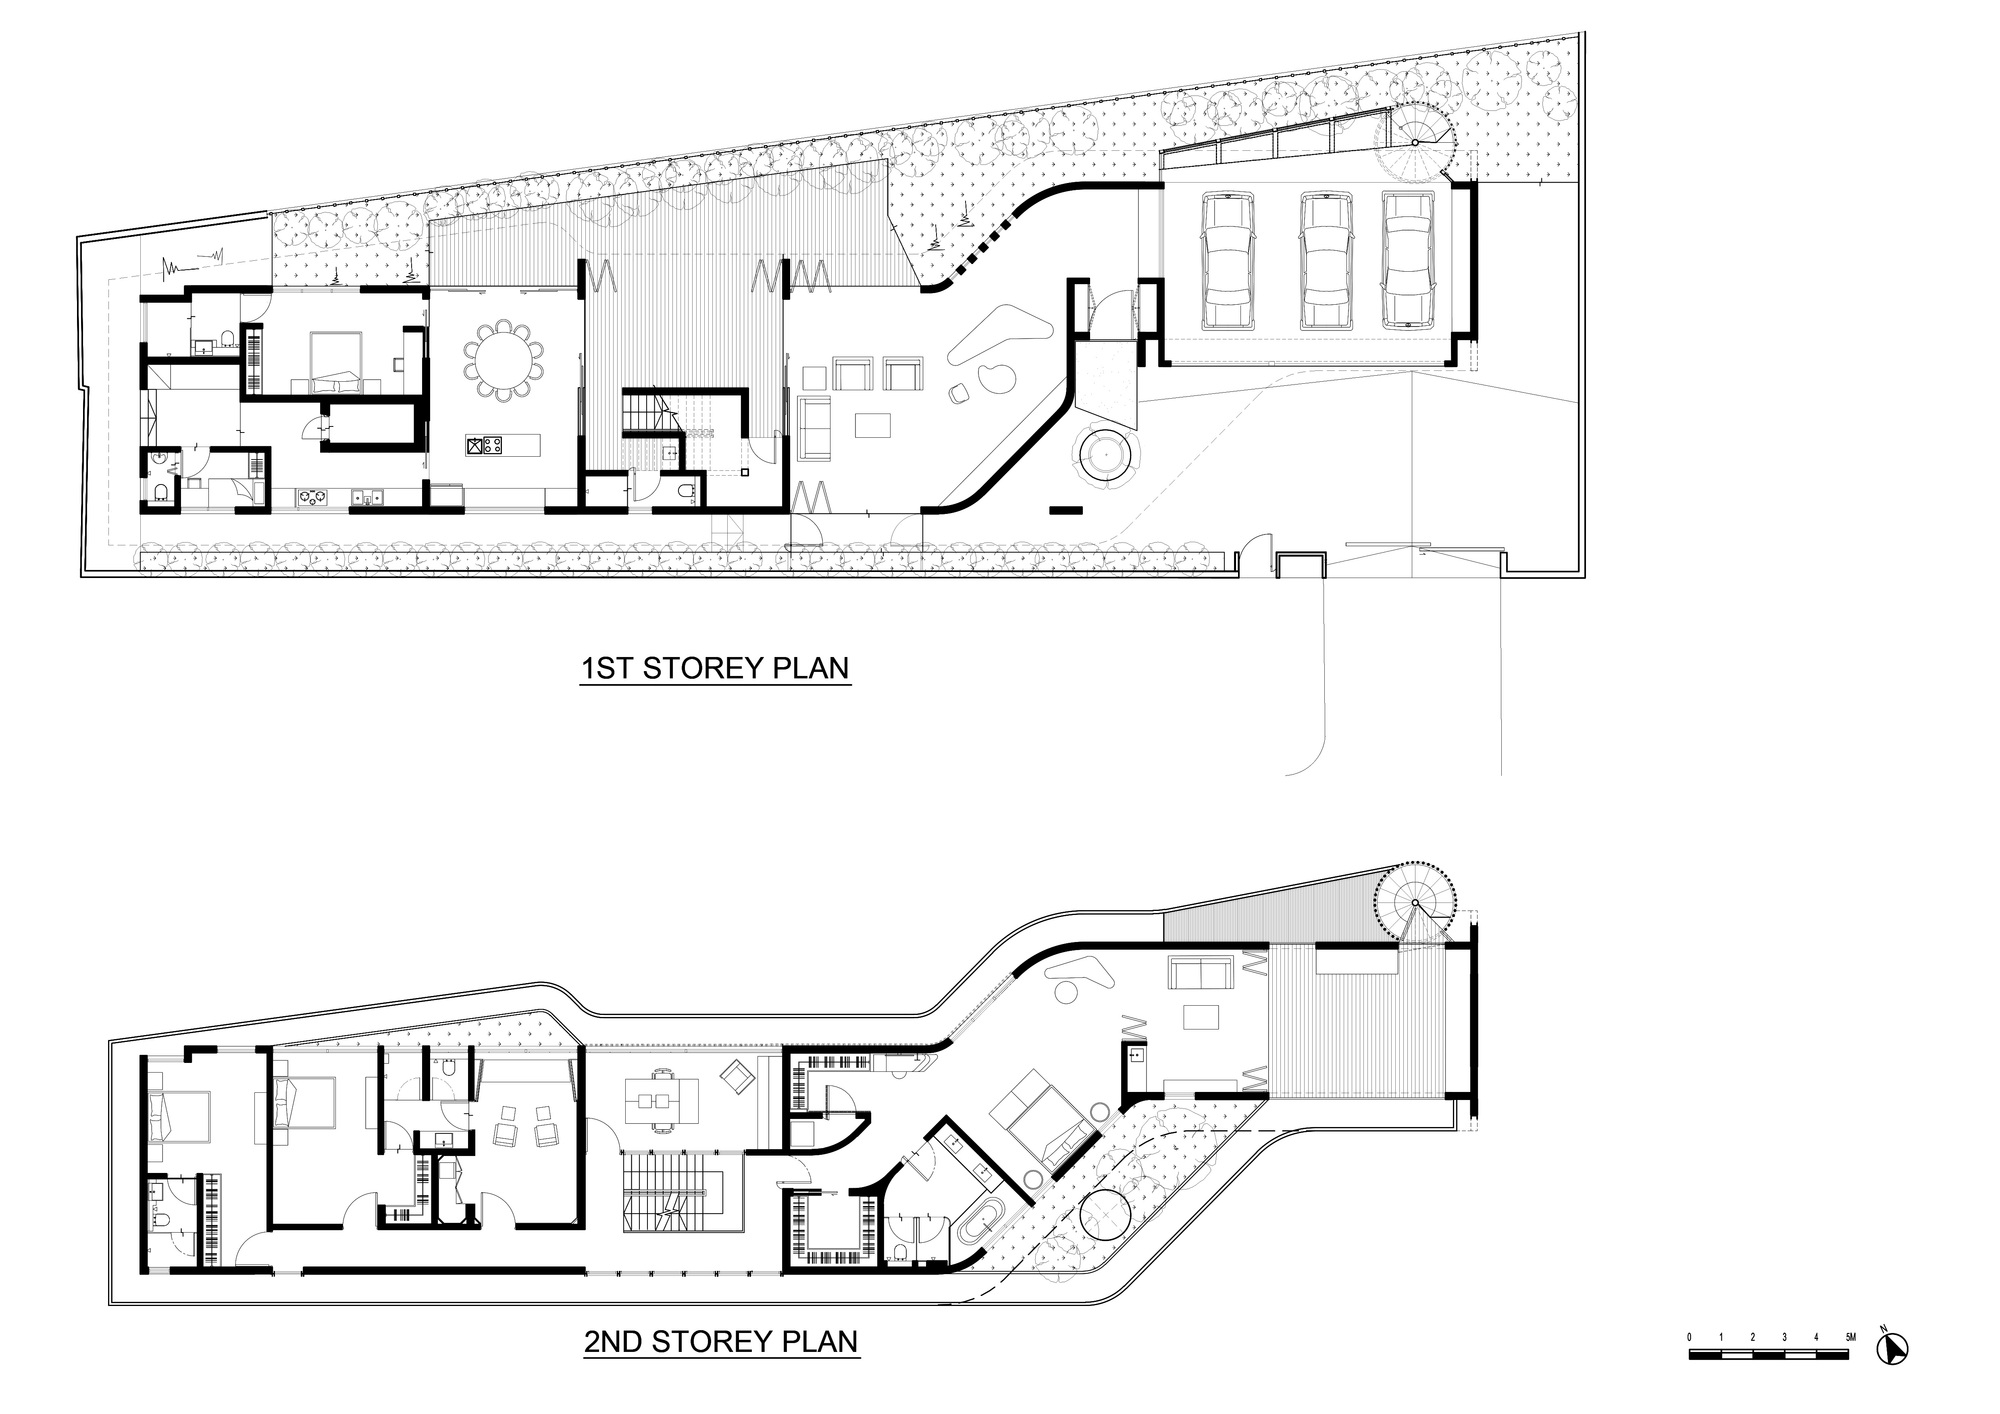 architecture floor plans gallery of fongster kite studio architecture 8 10172